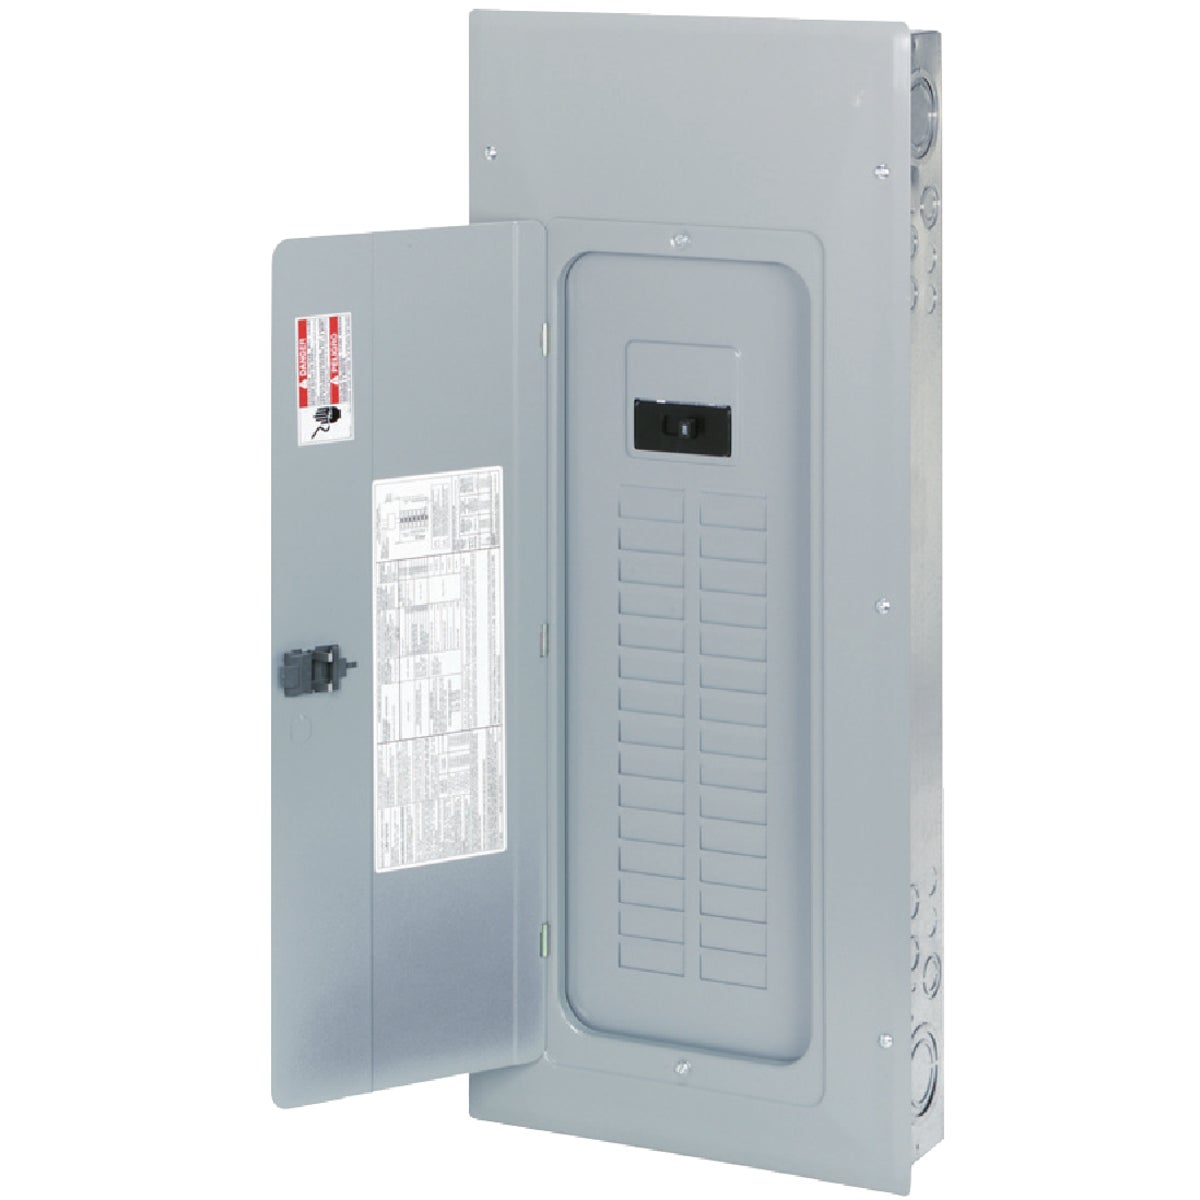 200A LOAD CENTER - BR3040B200 by Eaton Corporation